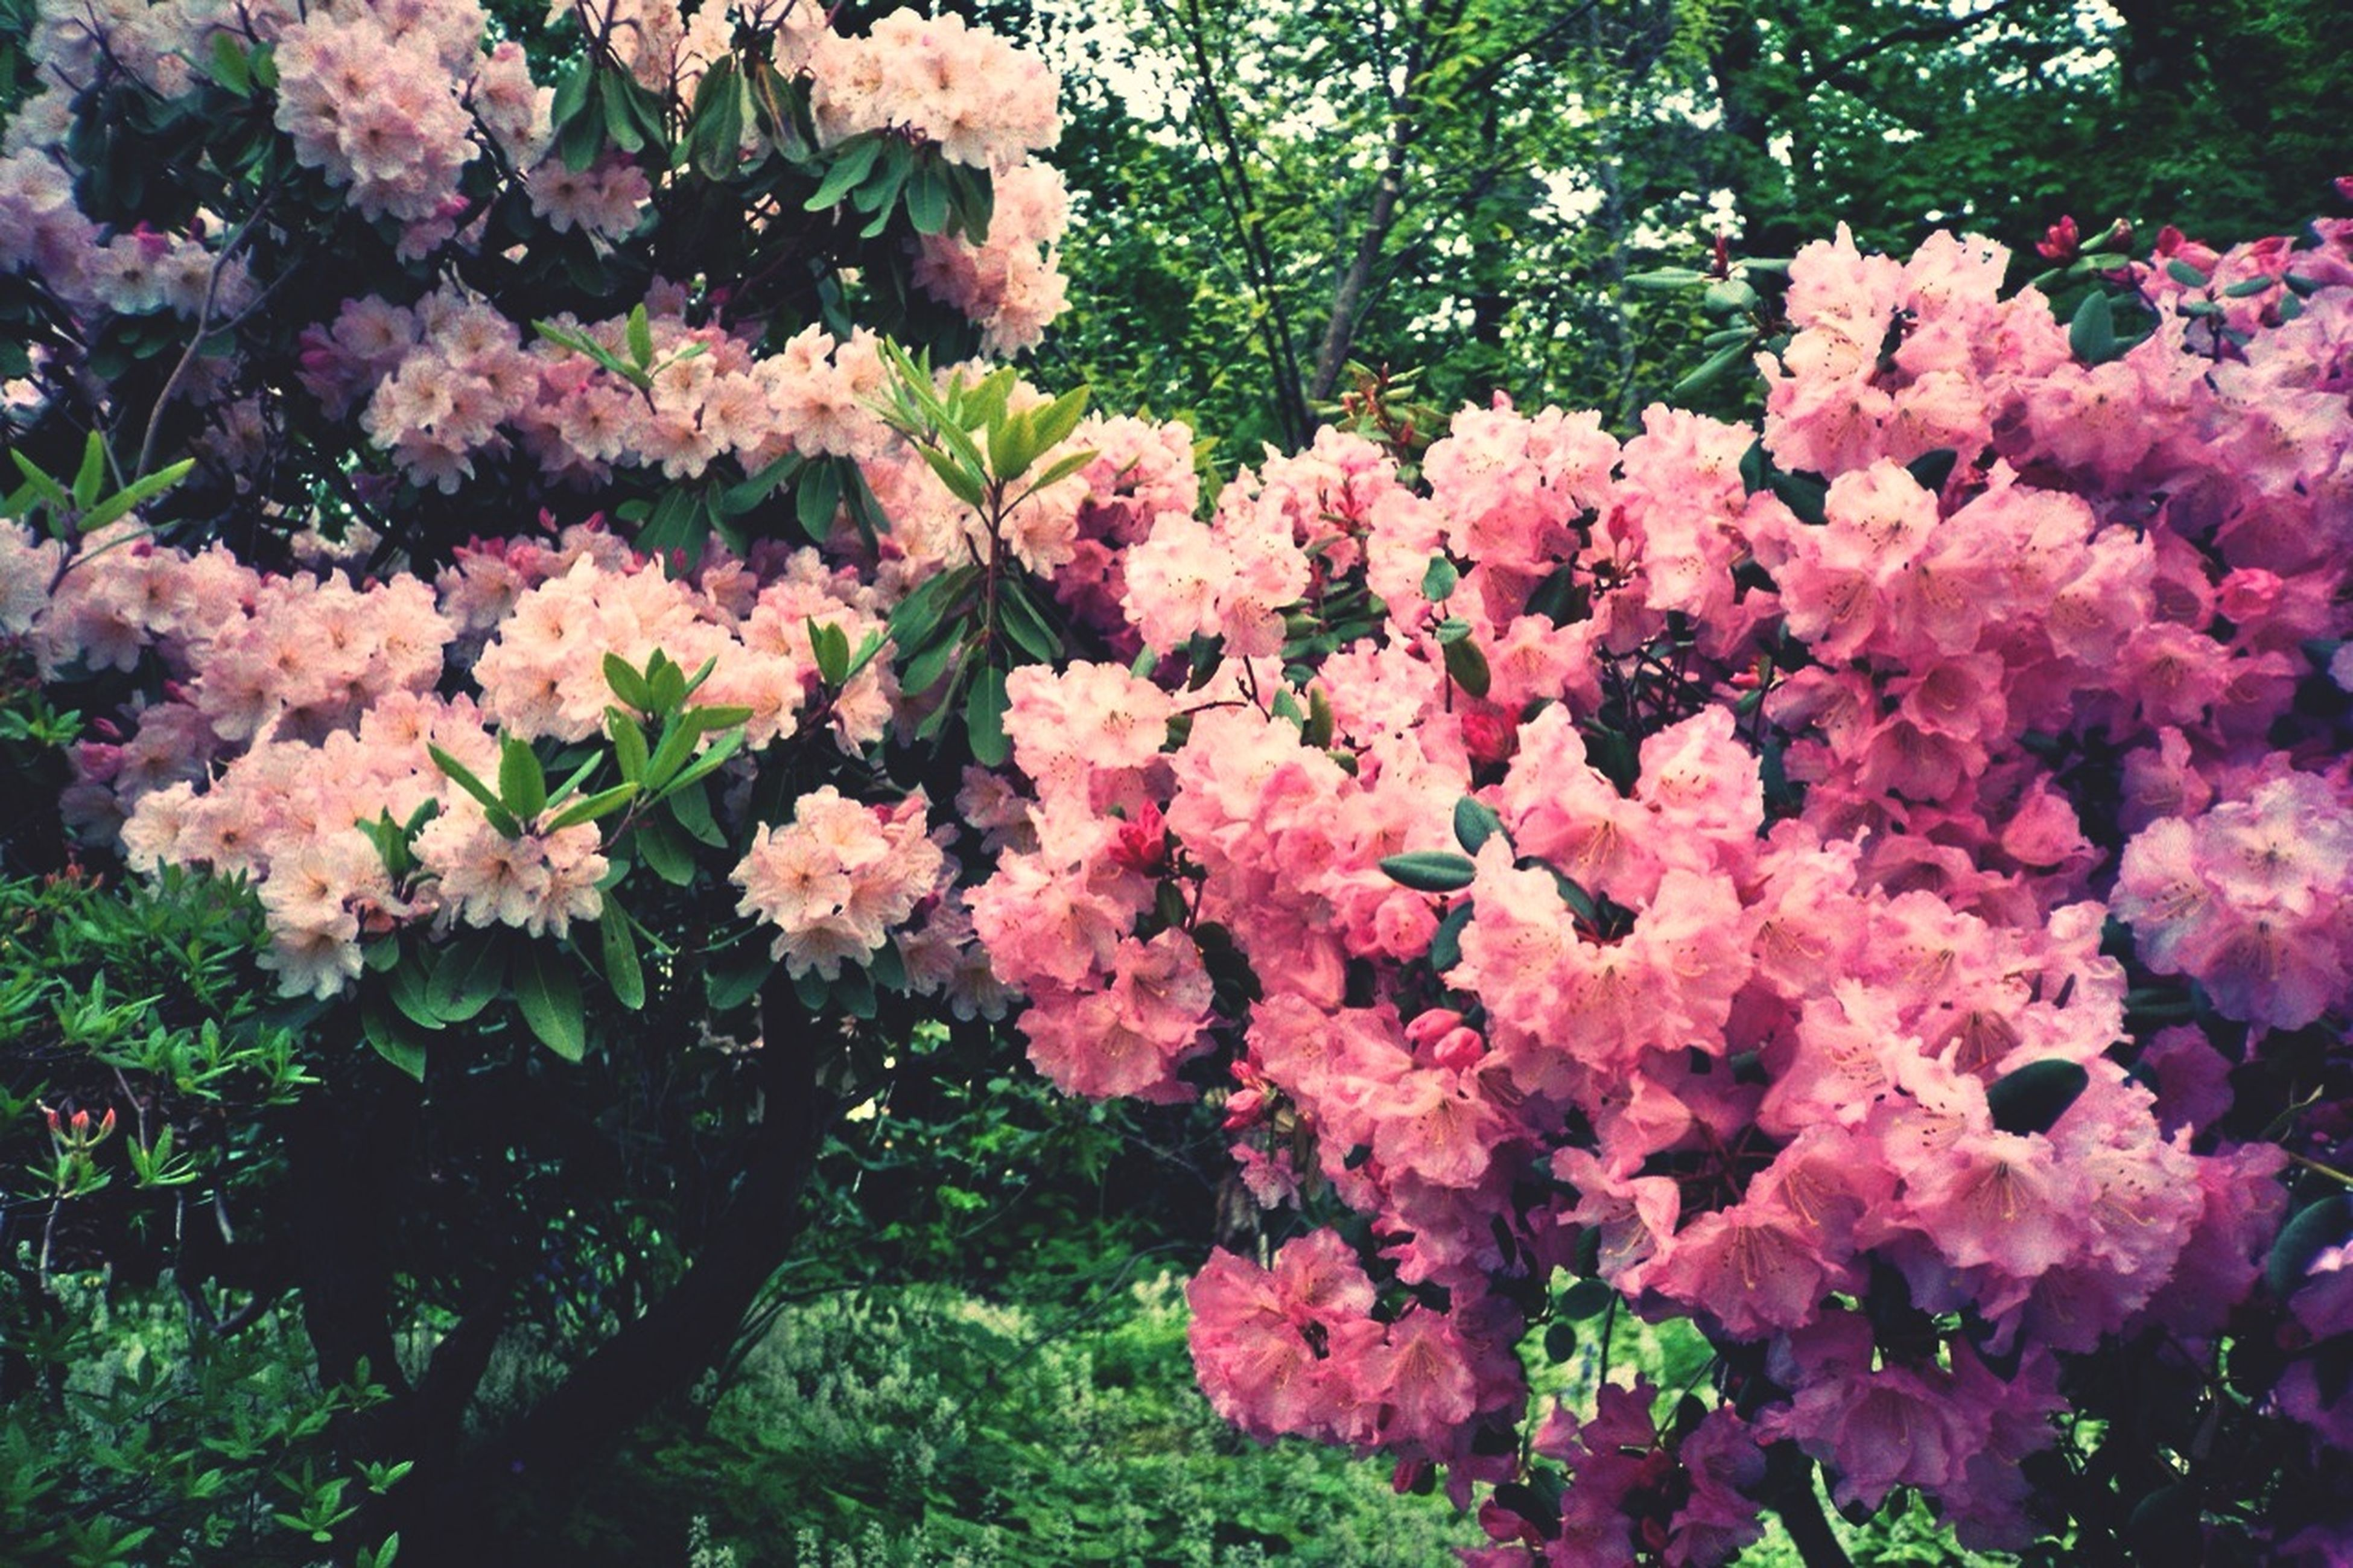 flower, growth, freshness, pink color, tree, beauty in nature, fragility, branch, nature, blossom, blooming, in bloom, petal, springtime, leaf, pink, plant, park - man made space, outdoors, botany